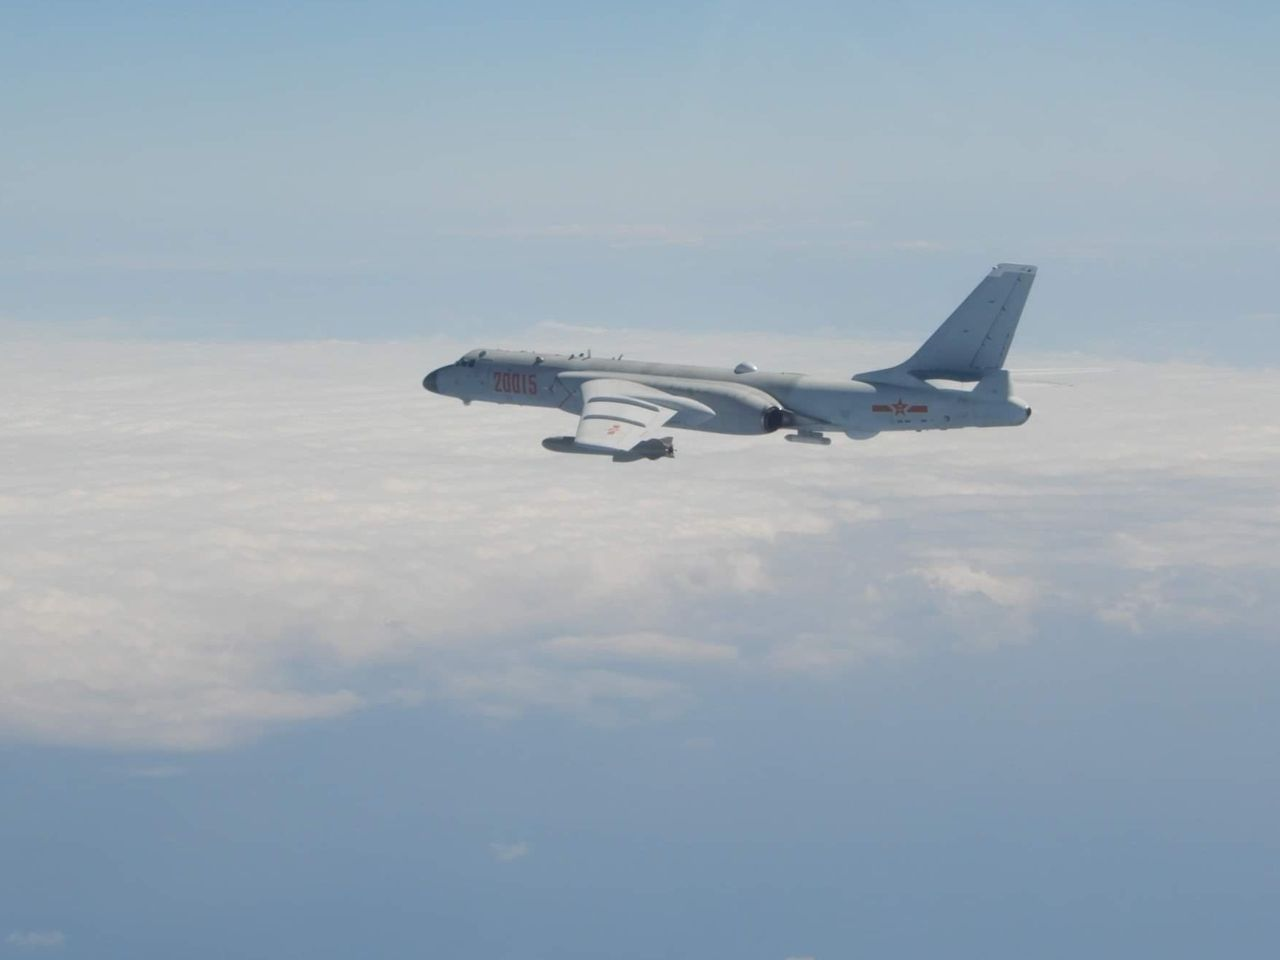 Taiwan says, China flew 56 jets to its air defense zone, the largest so far; China urges US to stop provocative behavior